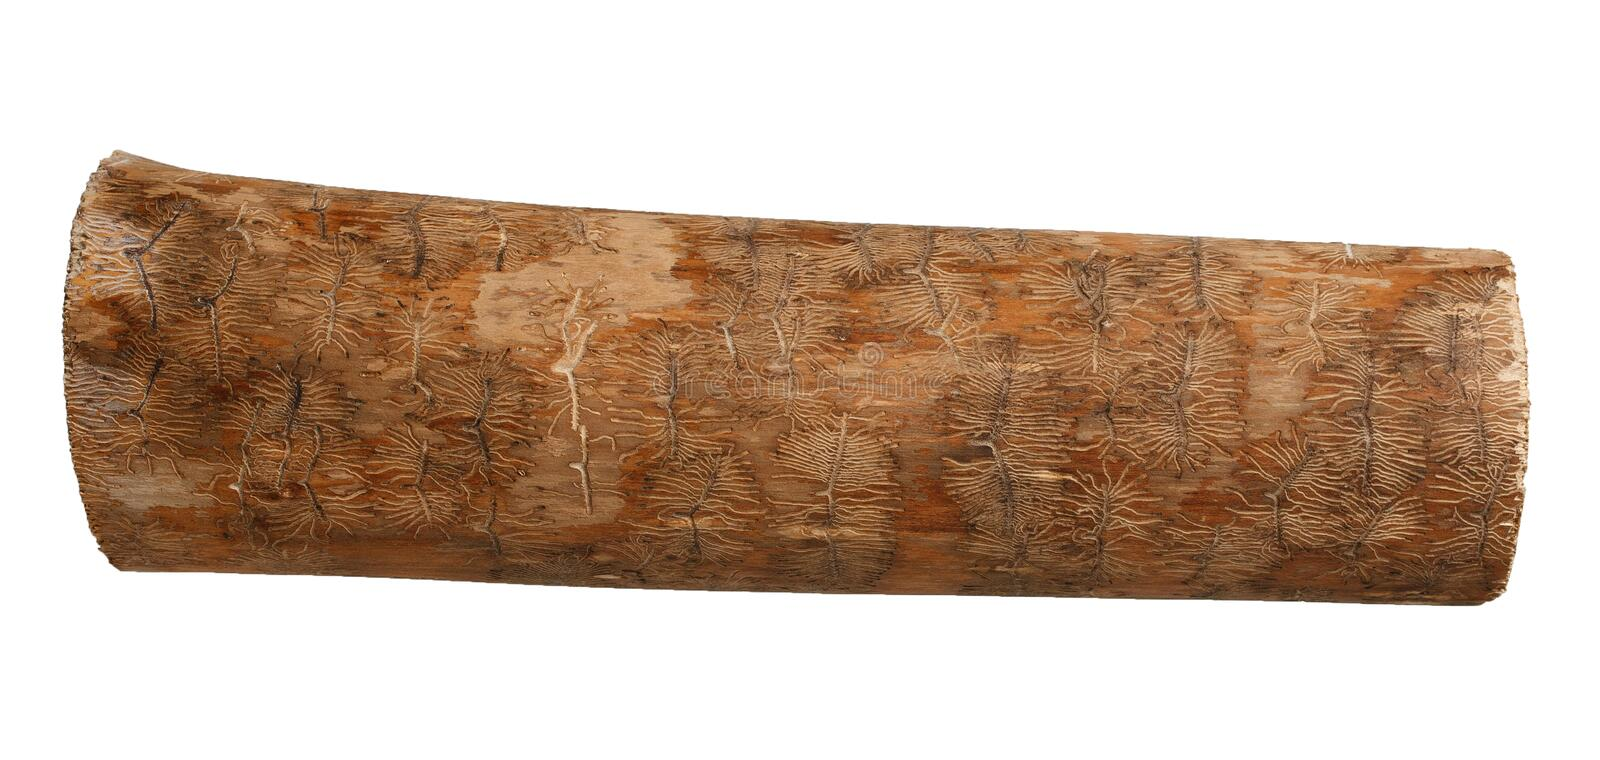 Ash tree wood log with bark beetle tracks royalty free stock photo